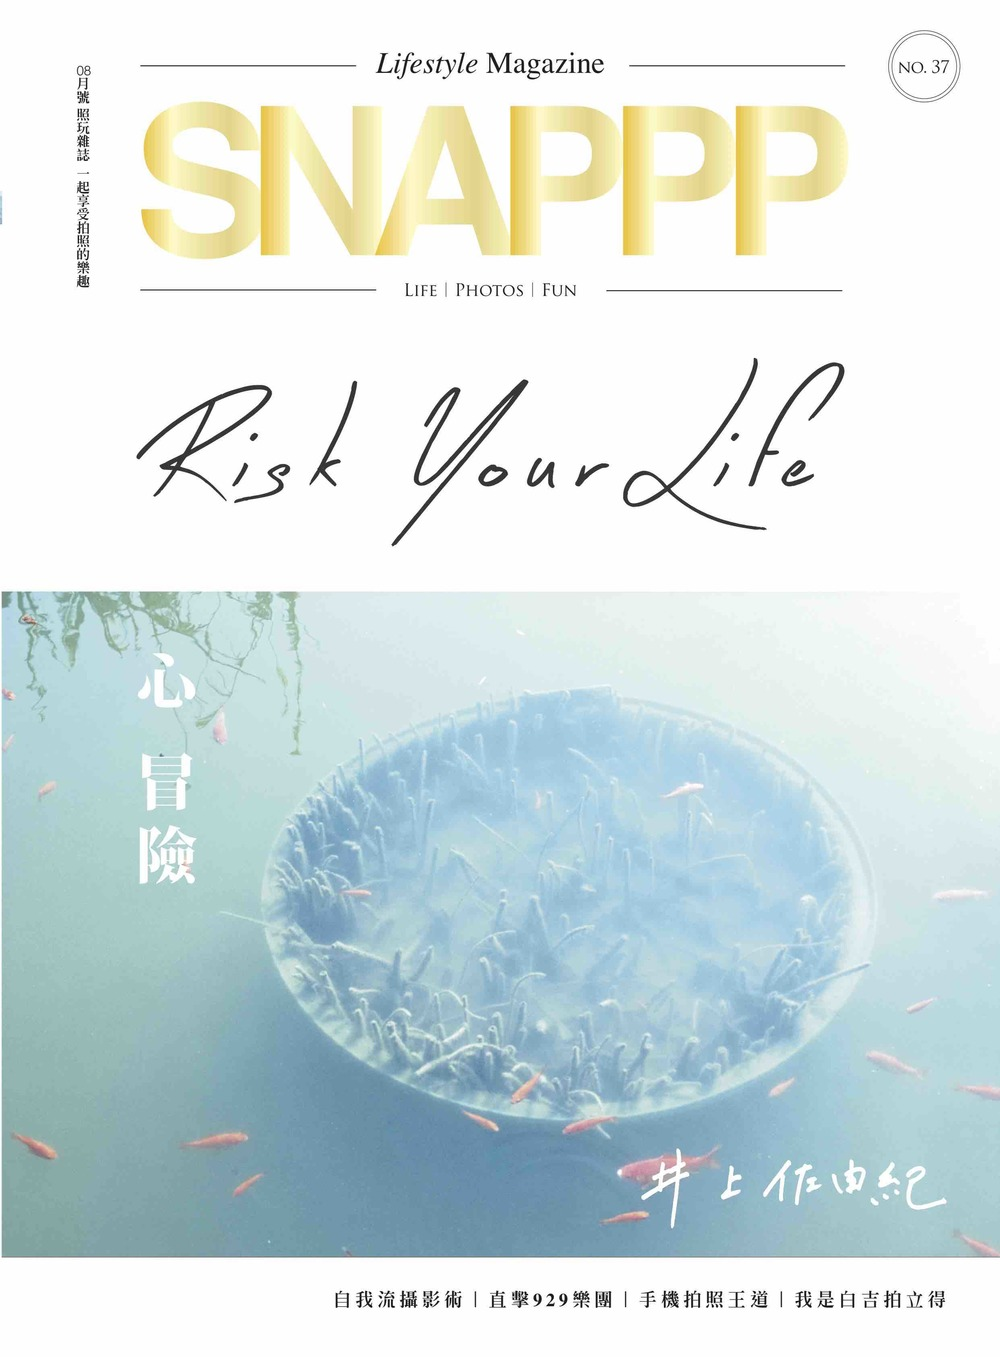 SNAPPP-NO37 COVER-ver2.jpg